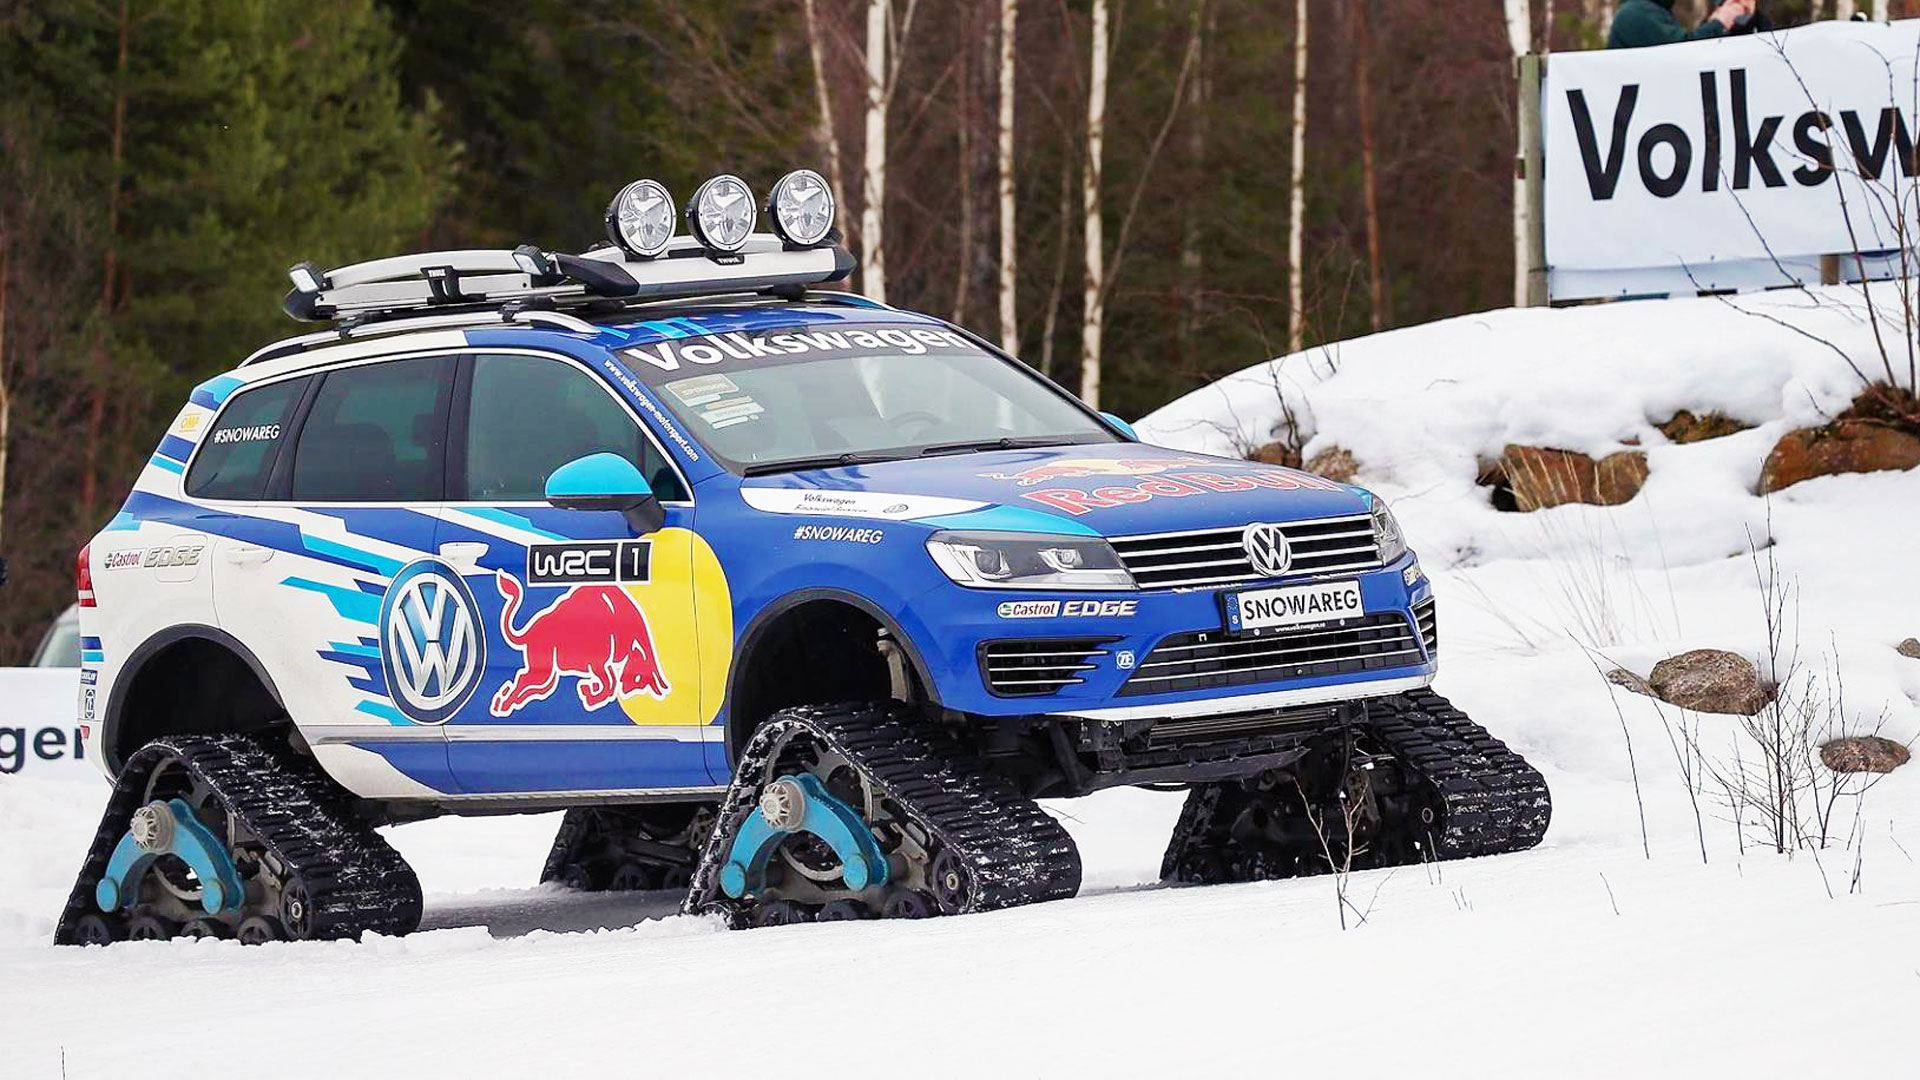 88 Tracks on a Volkswagen Touareg